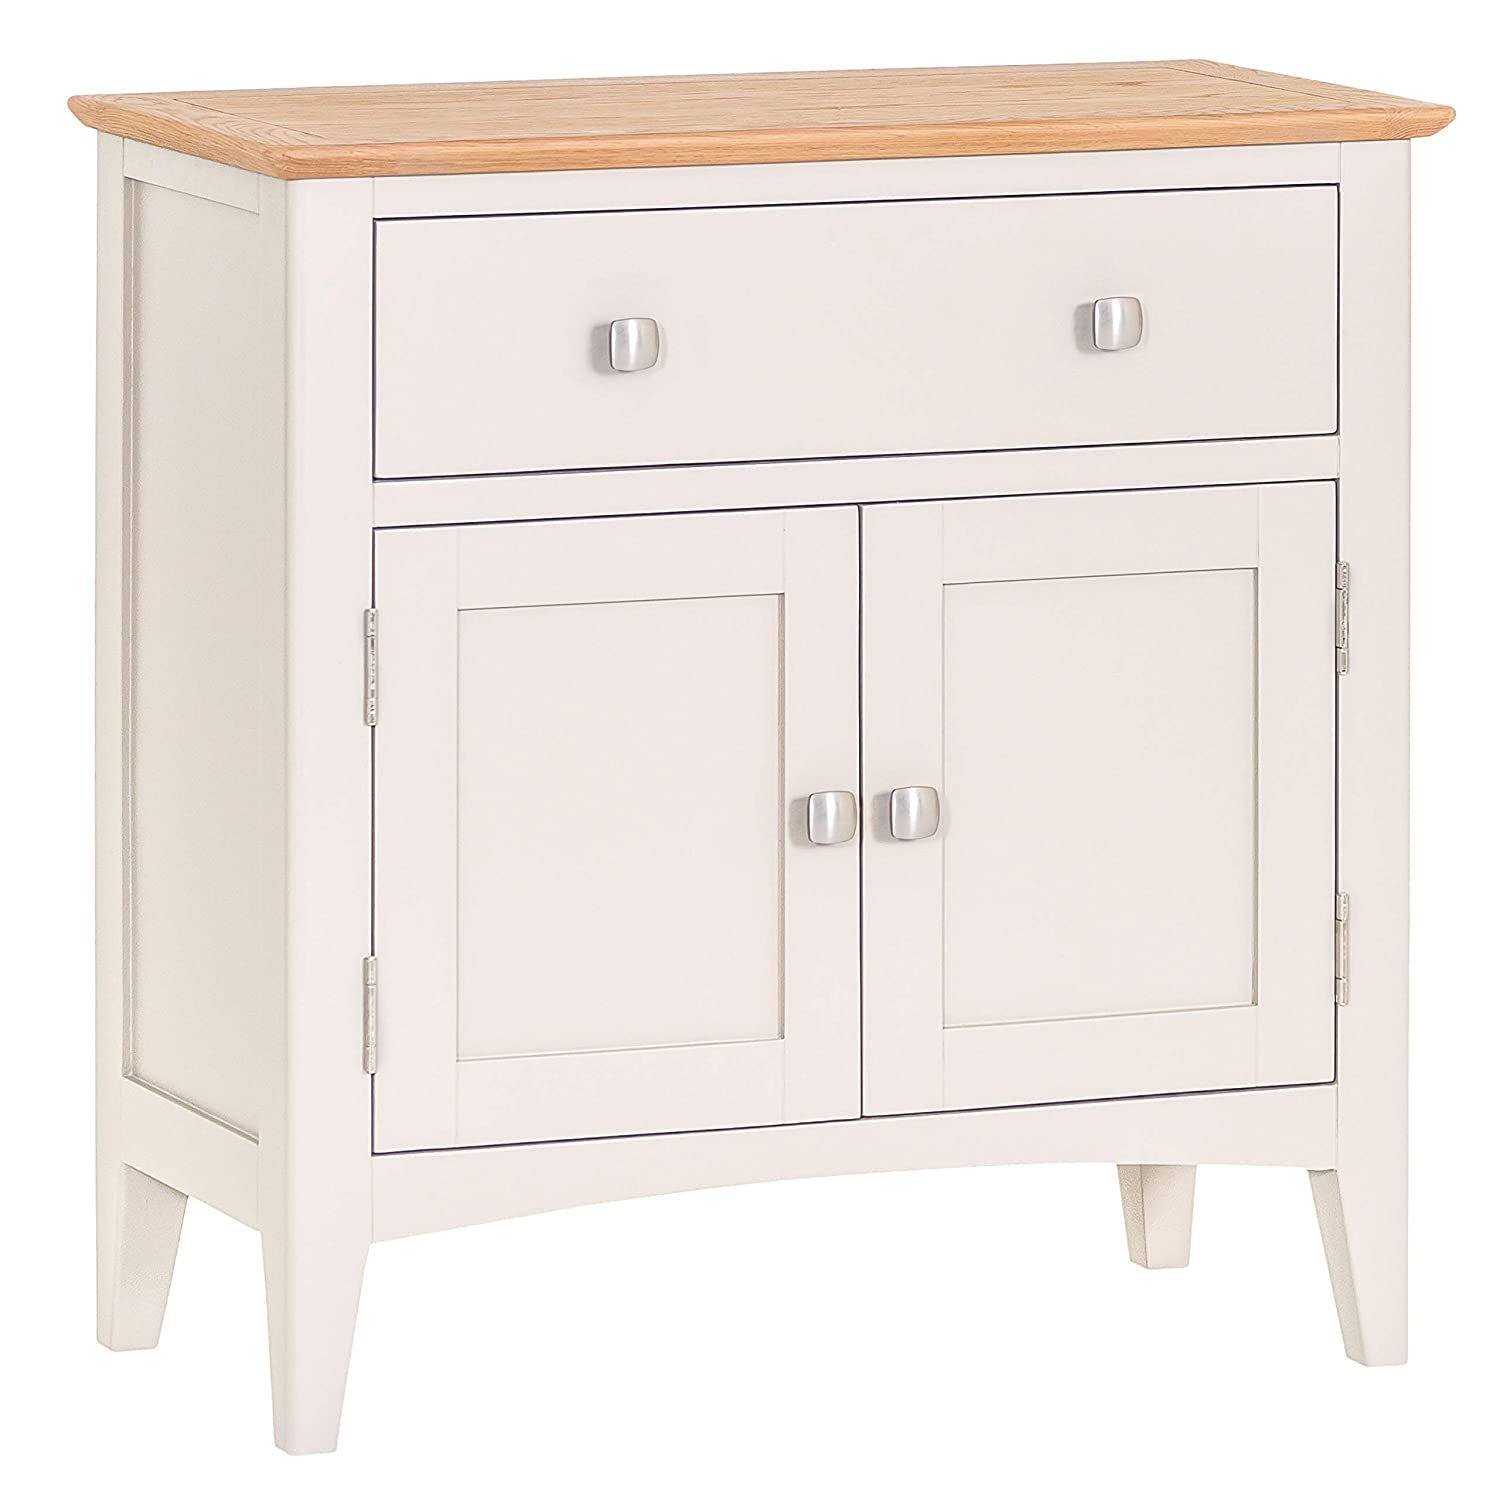 The Furniture Outlet Malvern Shaker Ivory Painted Oak 2 Door Mini Sideboard JTW